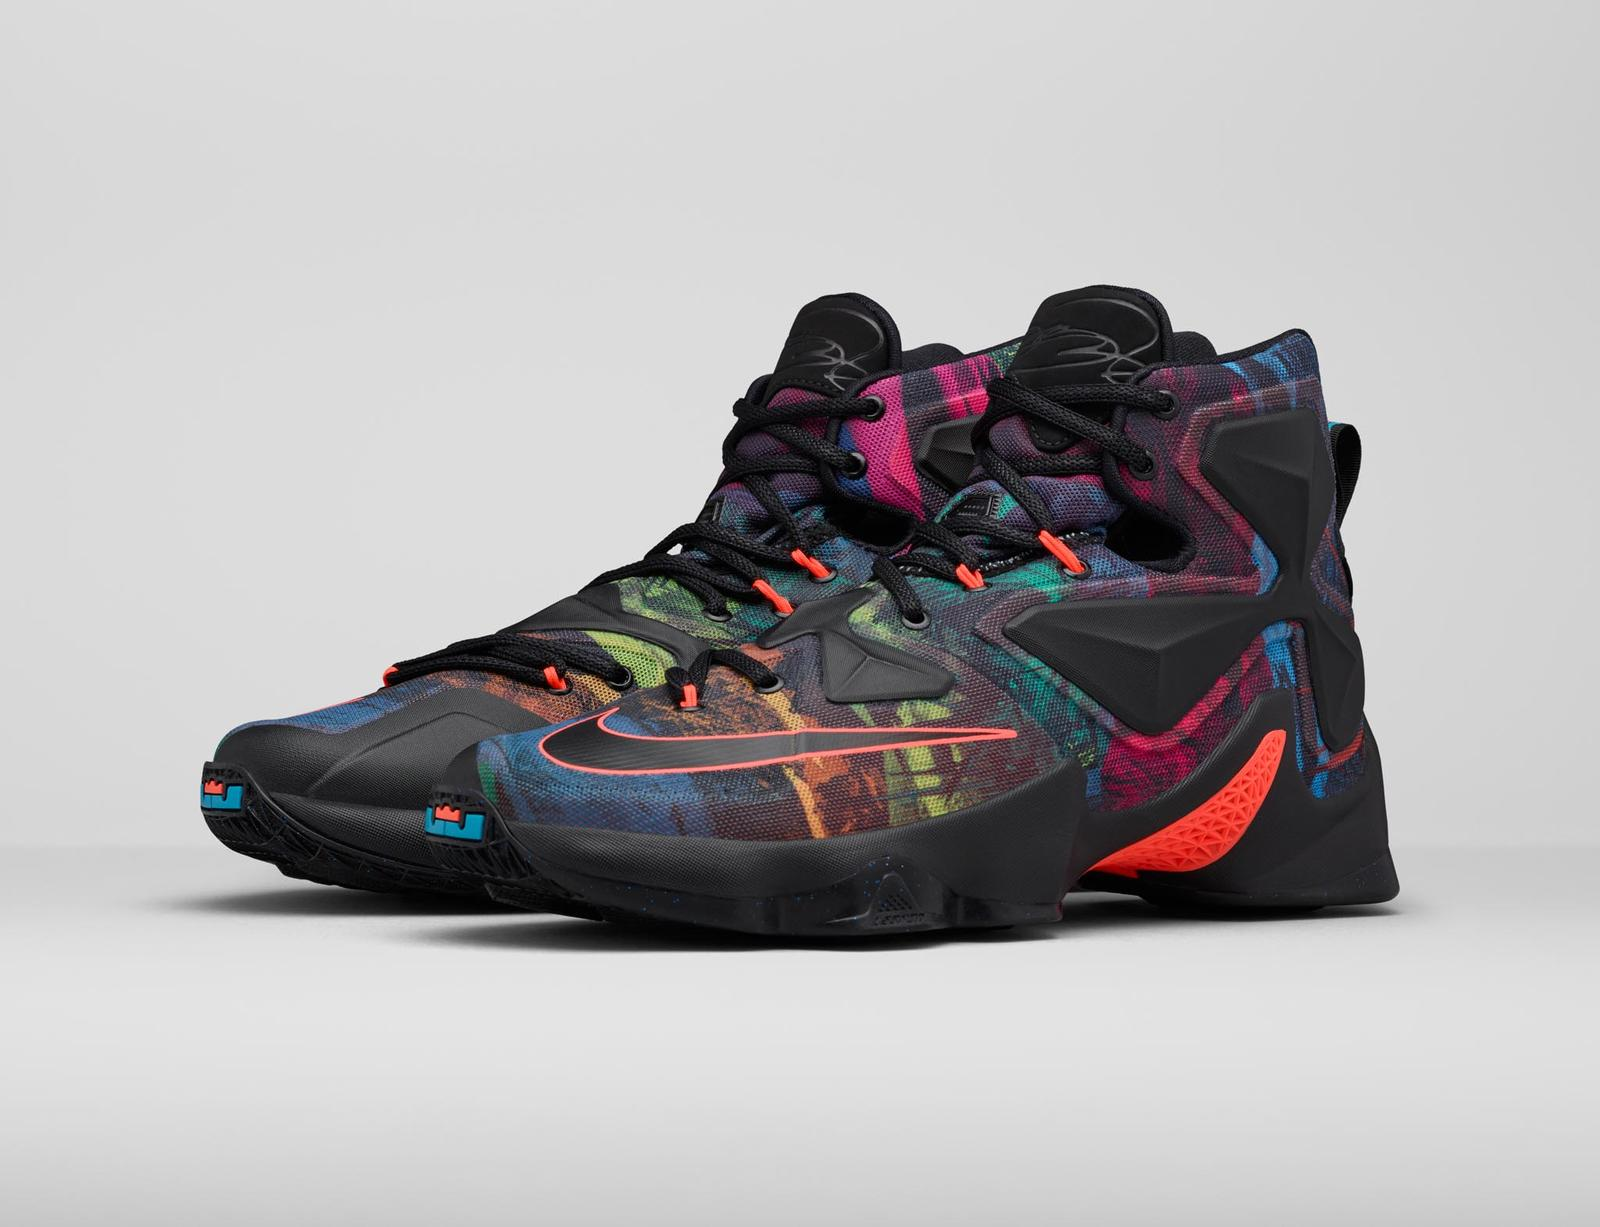 detailed look 50fb6 2ecc3 Facebook807219008E. The LEBRON 13 Akronite ...